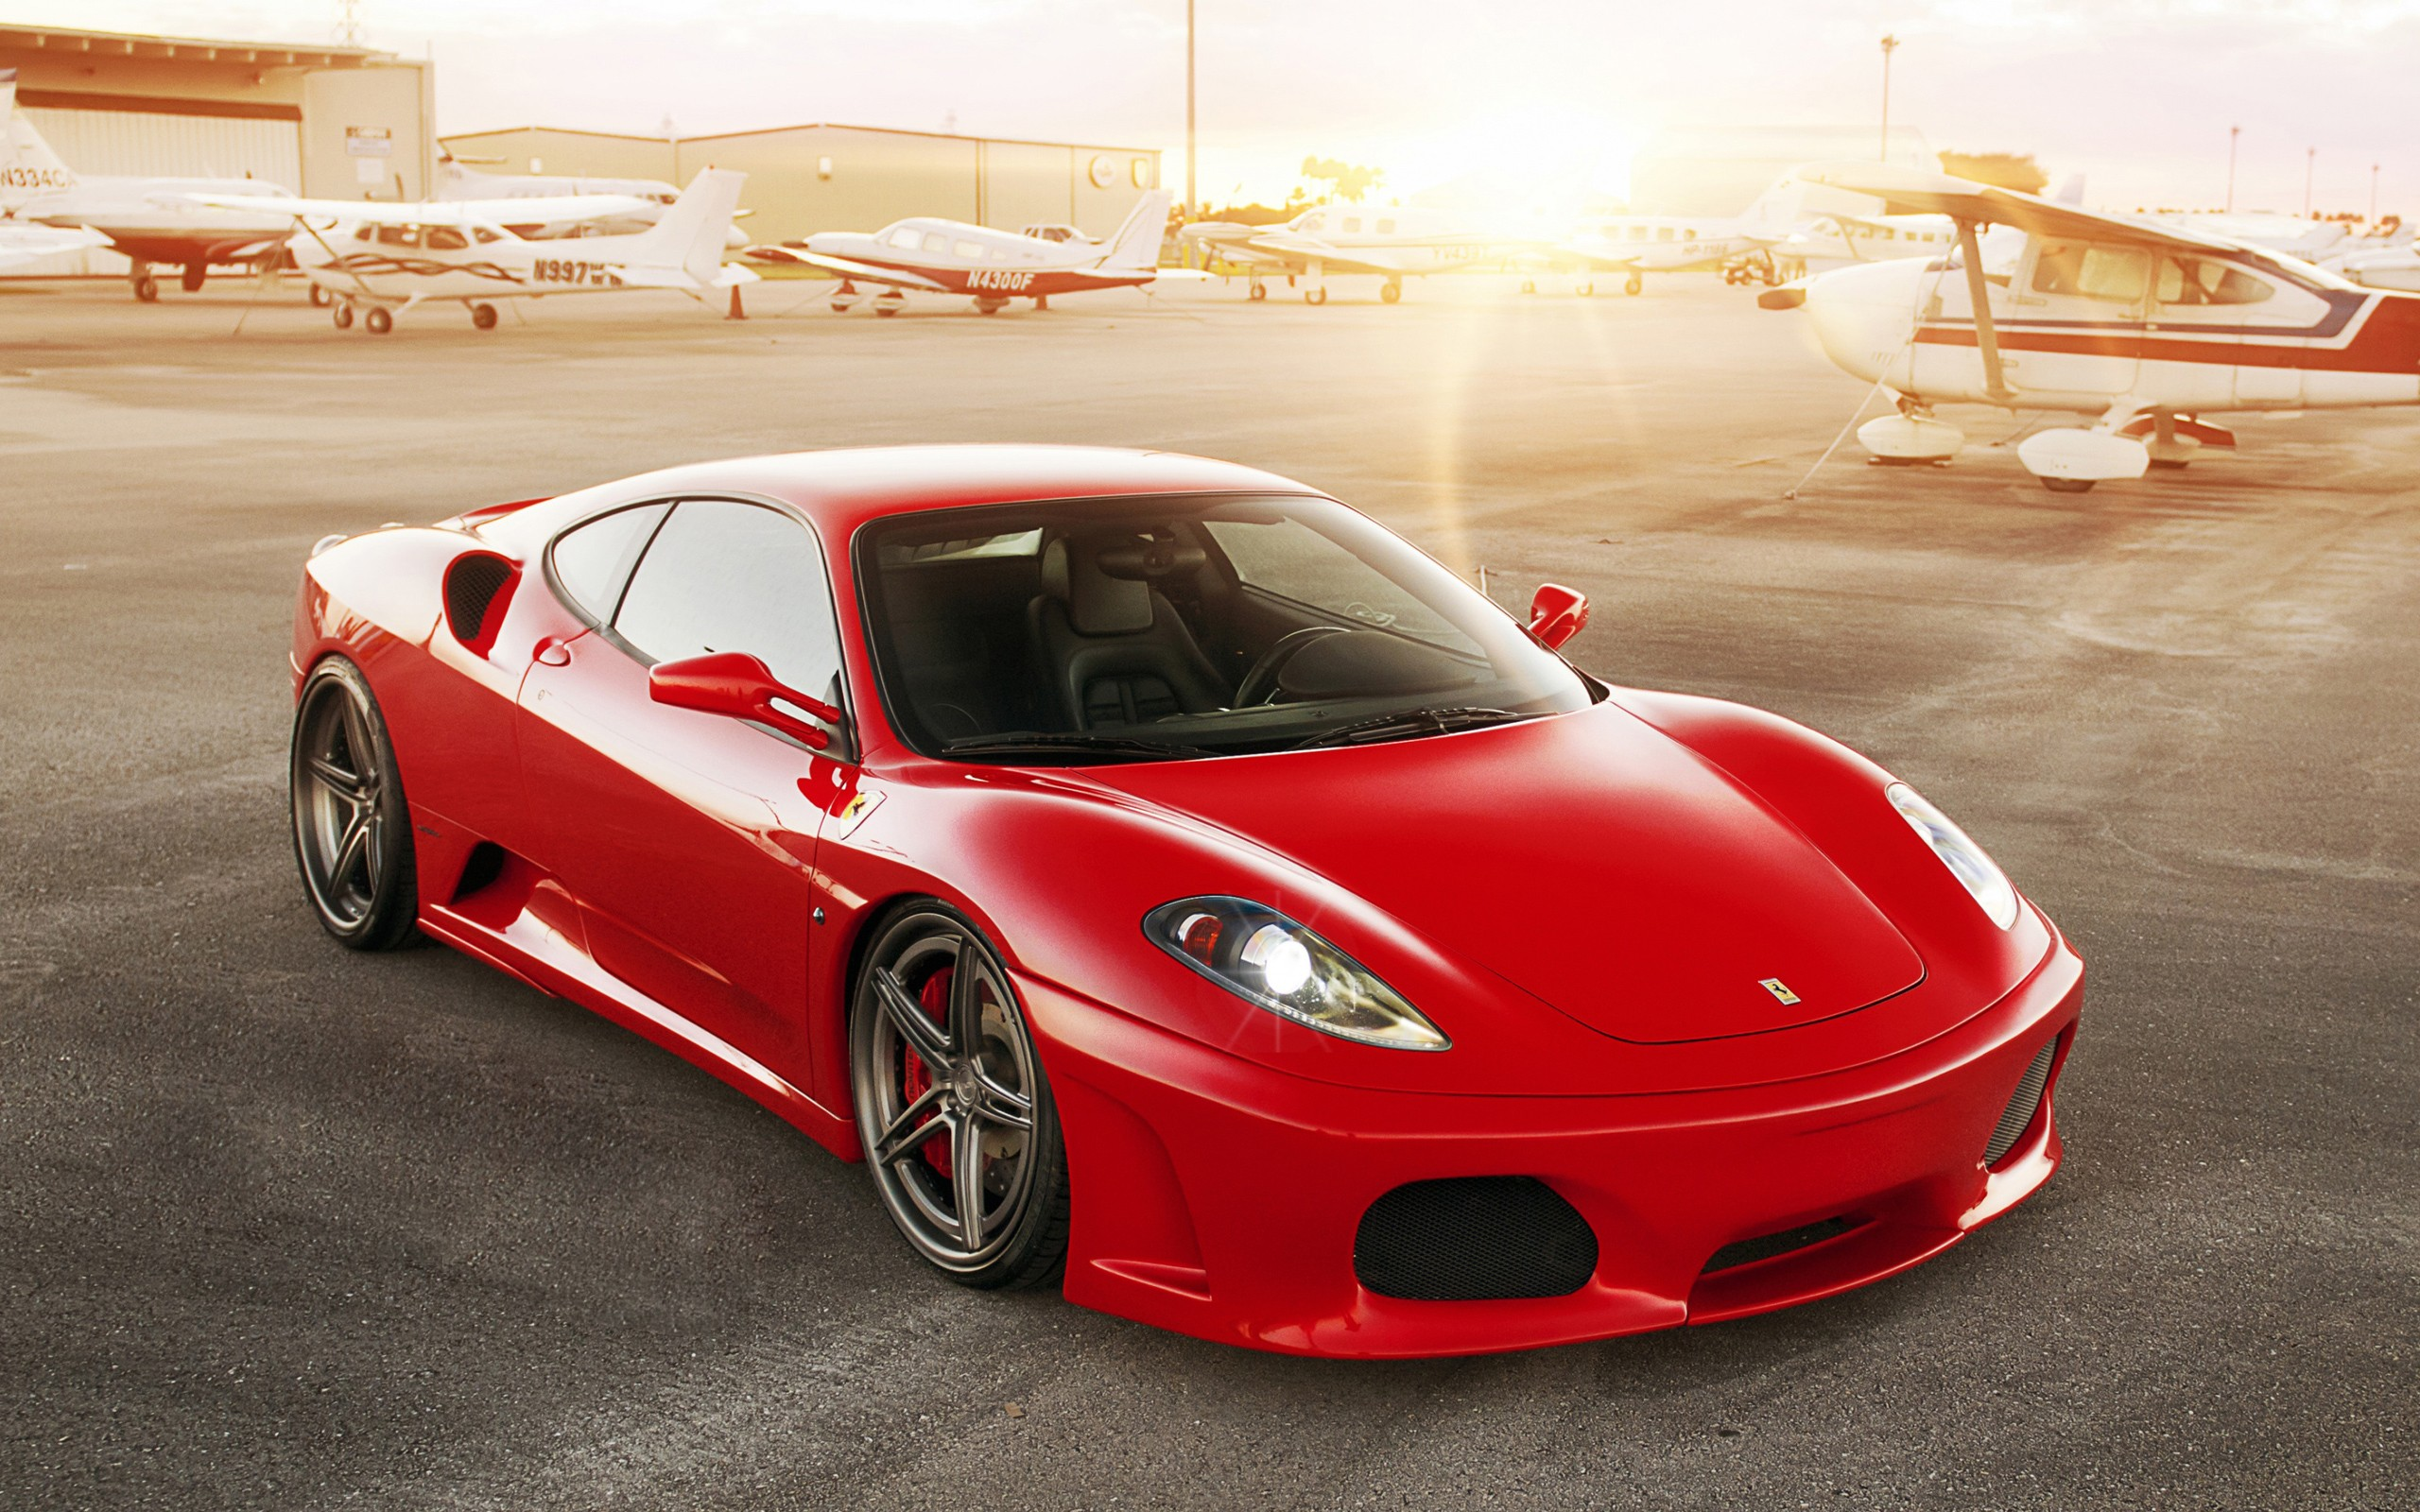 awesome red ferrari wallpaper 36314